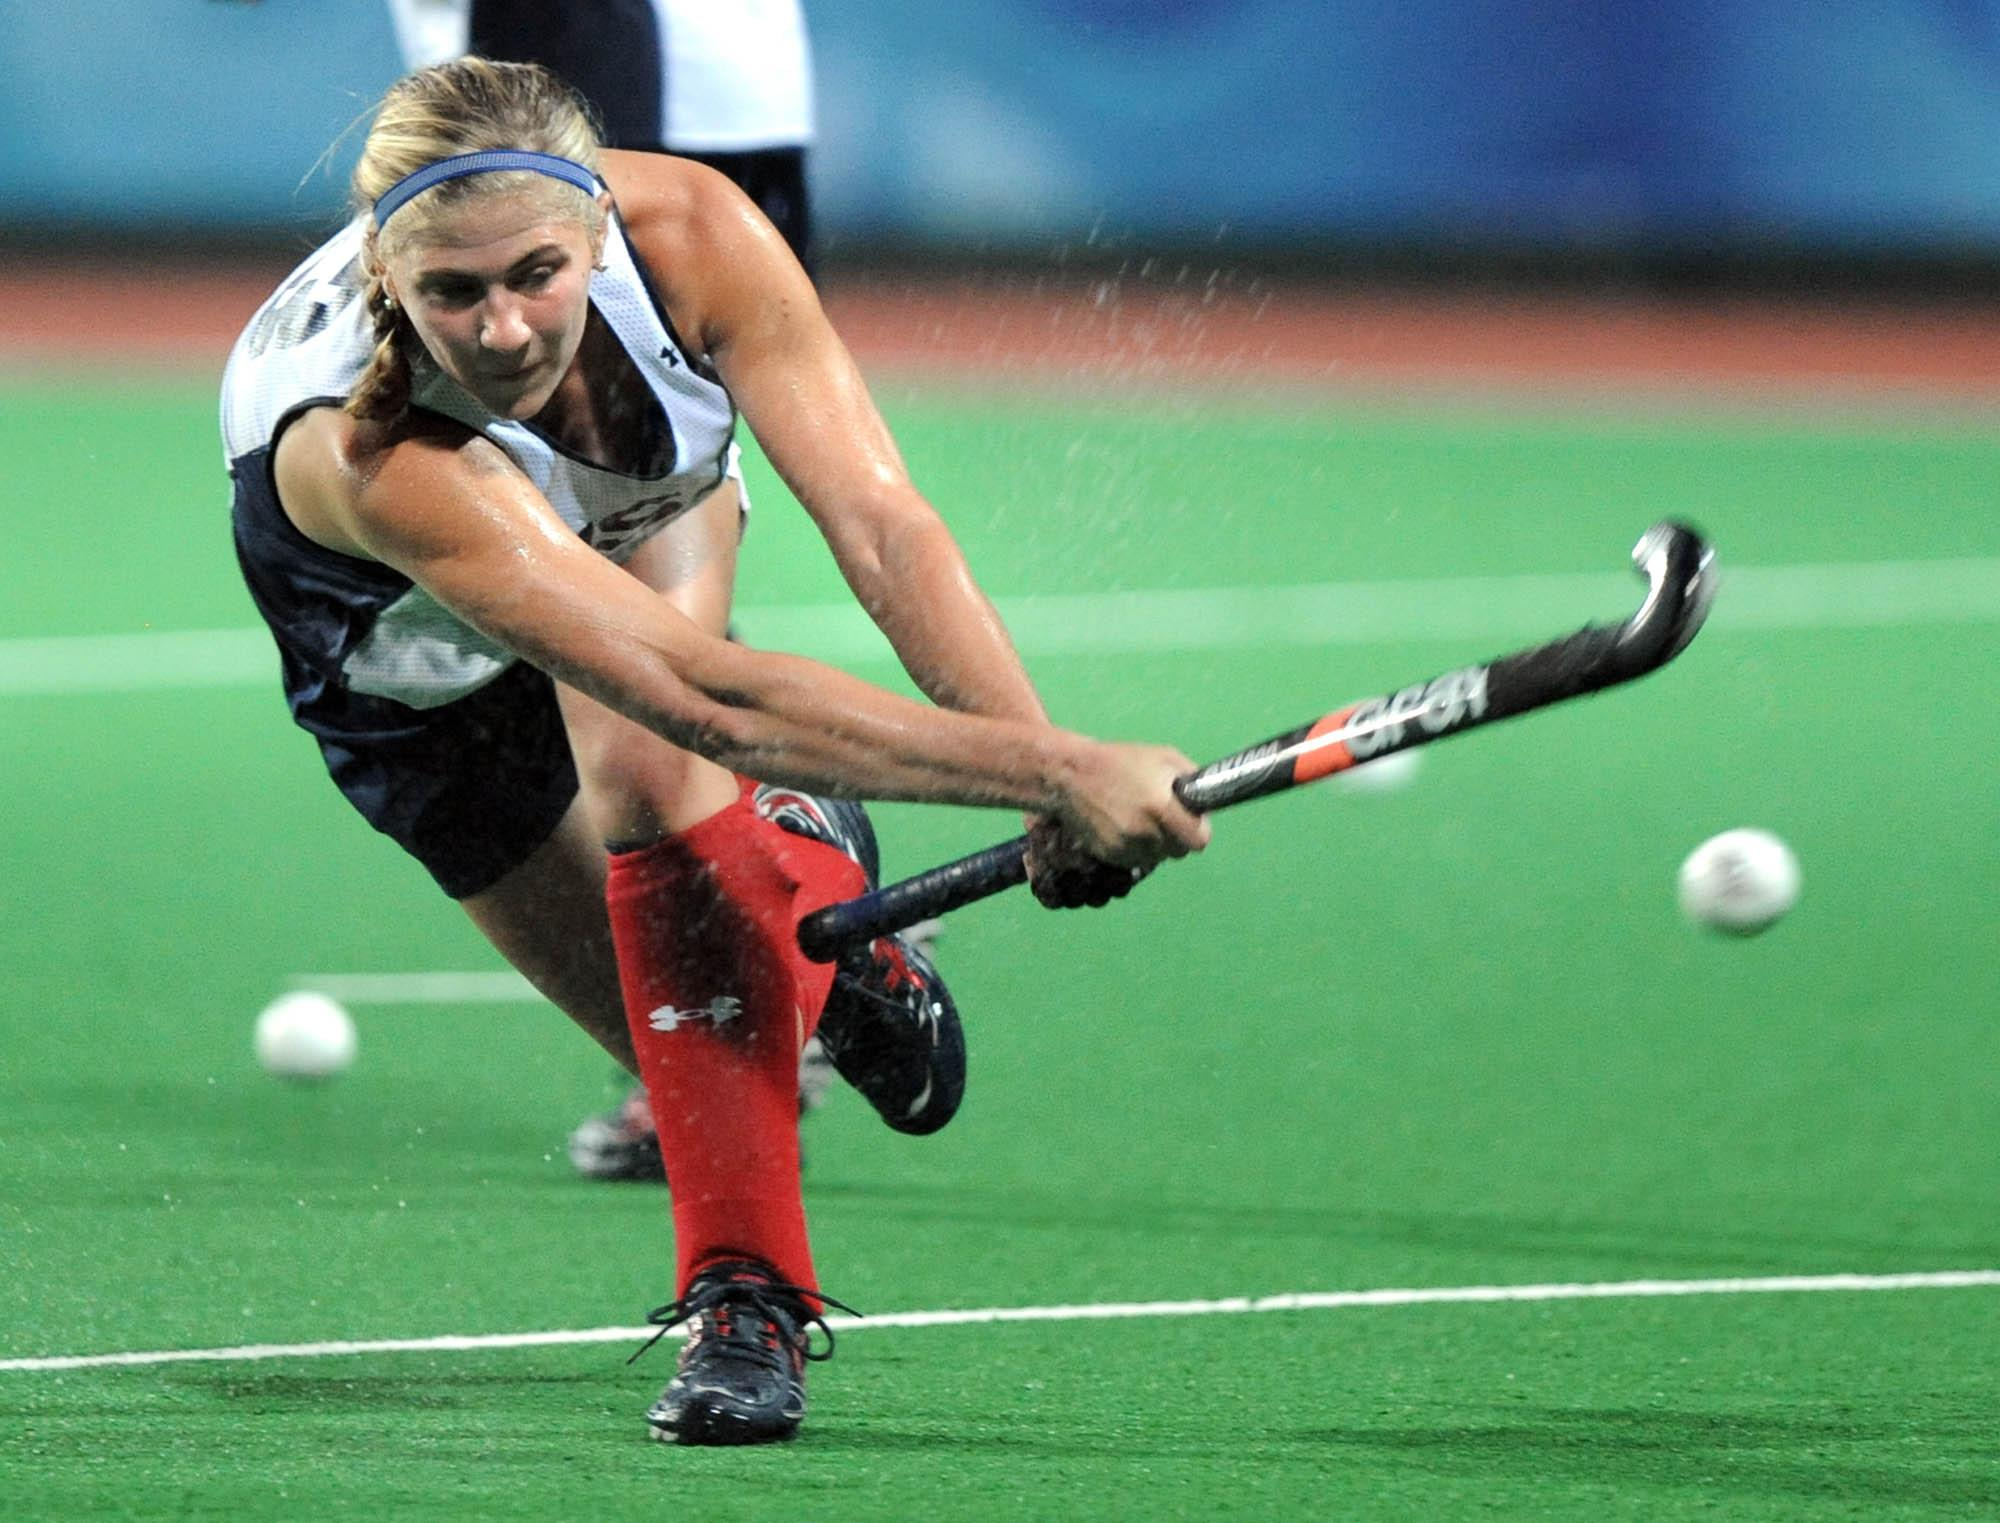 St. Mark's grad Katelyn Falgowski is the DSBA 2016 Athlete of the Year after playing in her third Olympics for the U.S. field hockey team.